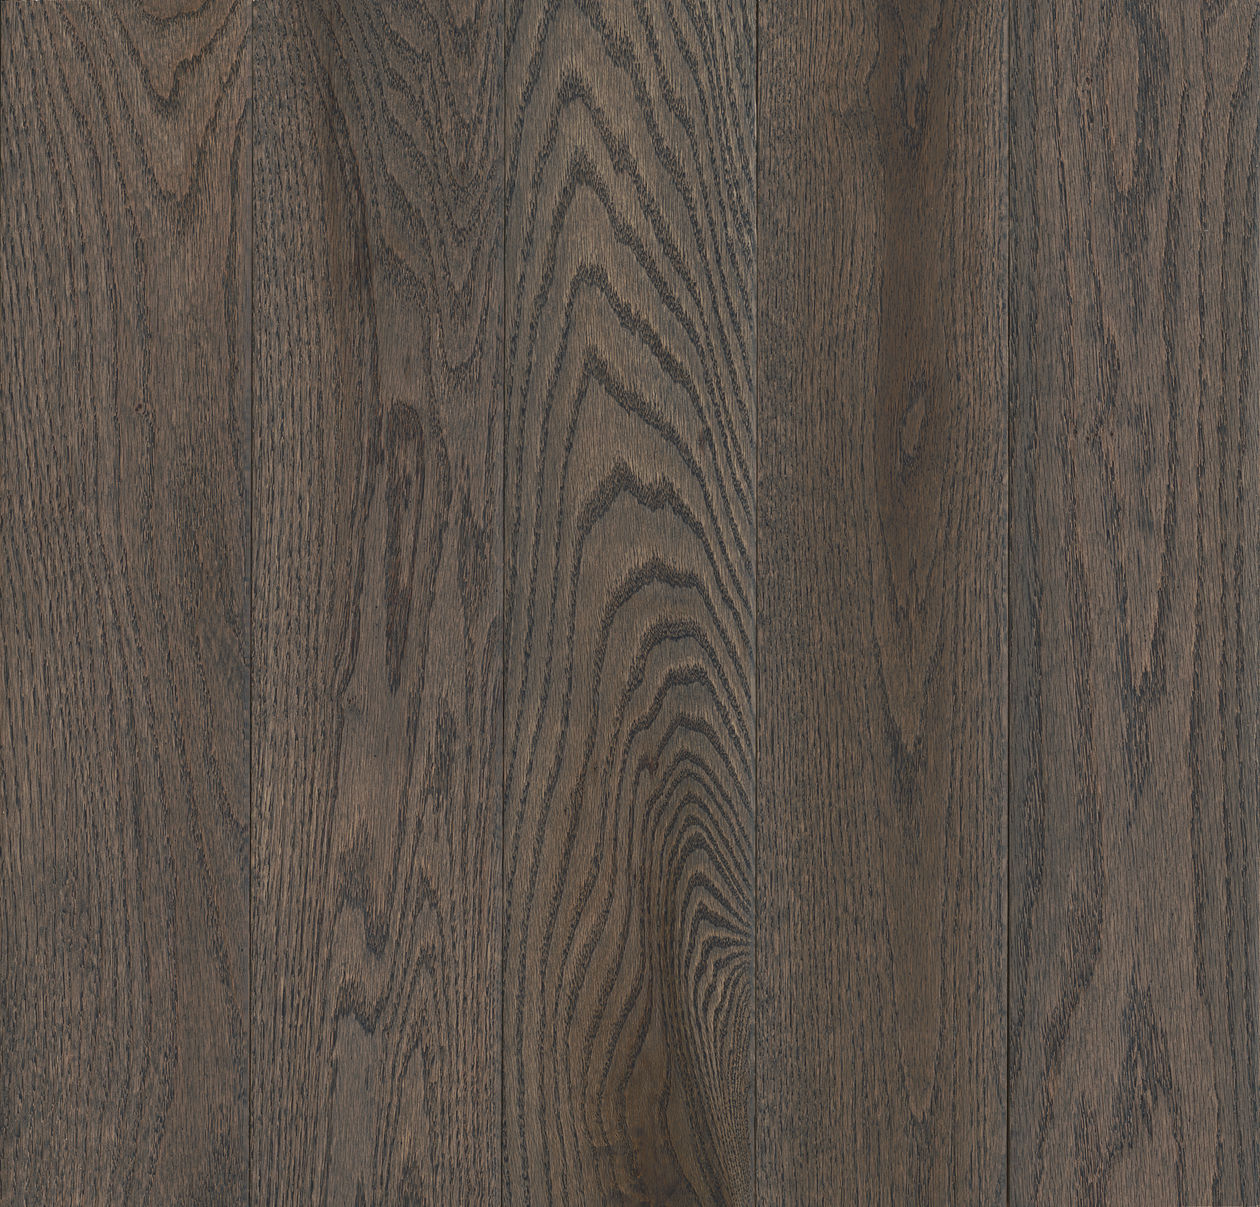 Solid Oak Oceanside Grey Quick Silver Timberland Wood Floors